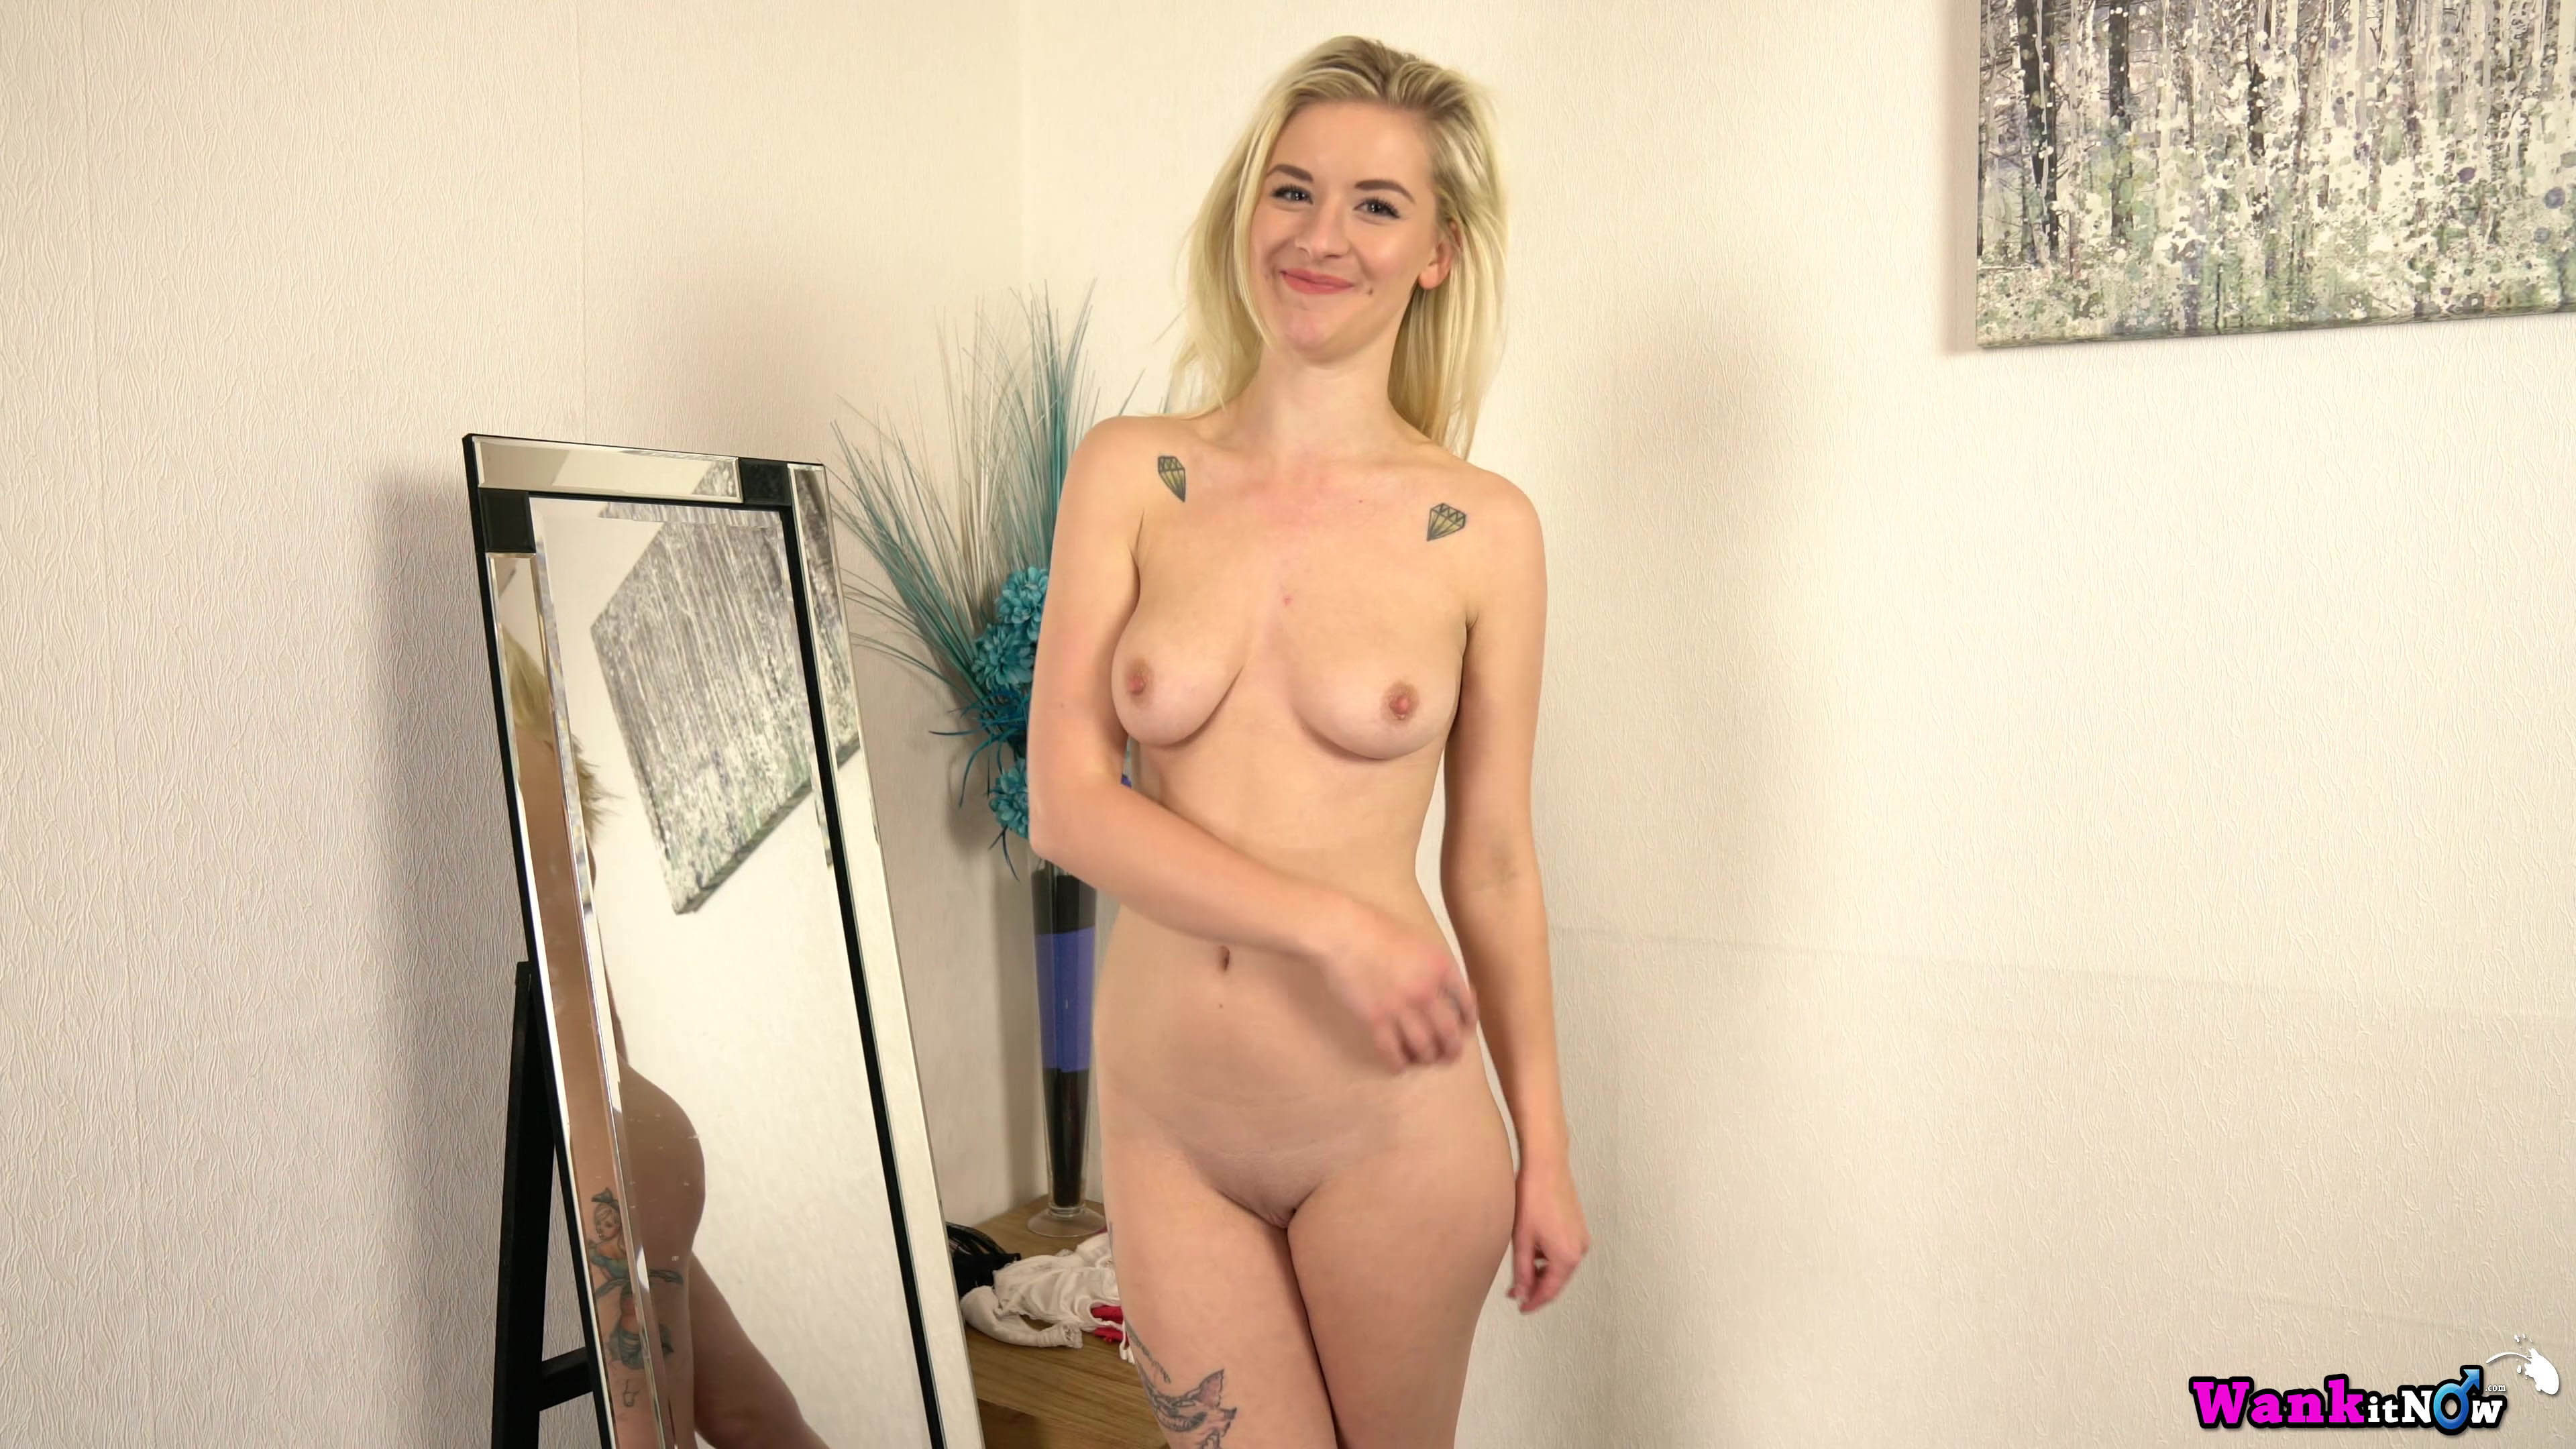 Wankitnow – slender british cutie grace puts off her new lingerie to tease in front of a mirror #7